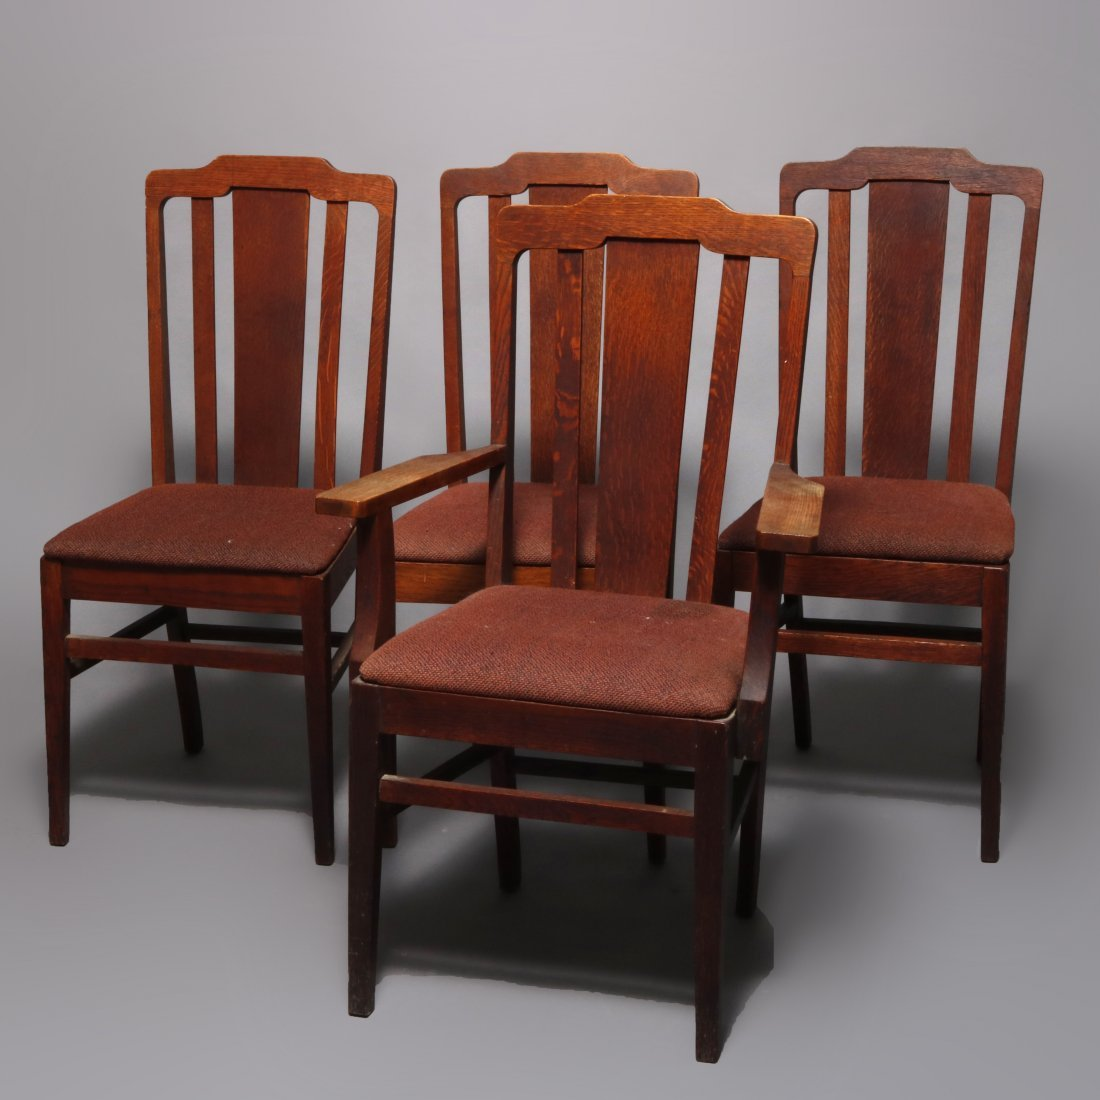 Arts & Crafts Mission Oak Stickley Style Chairs c1910